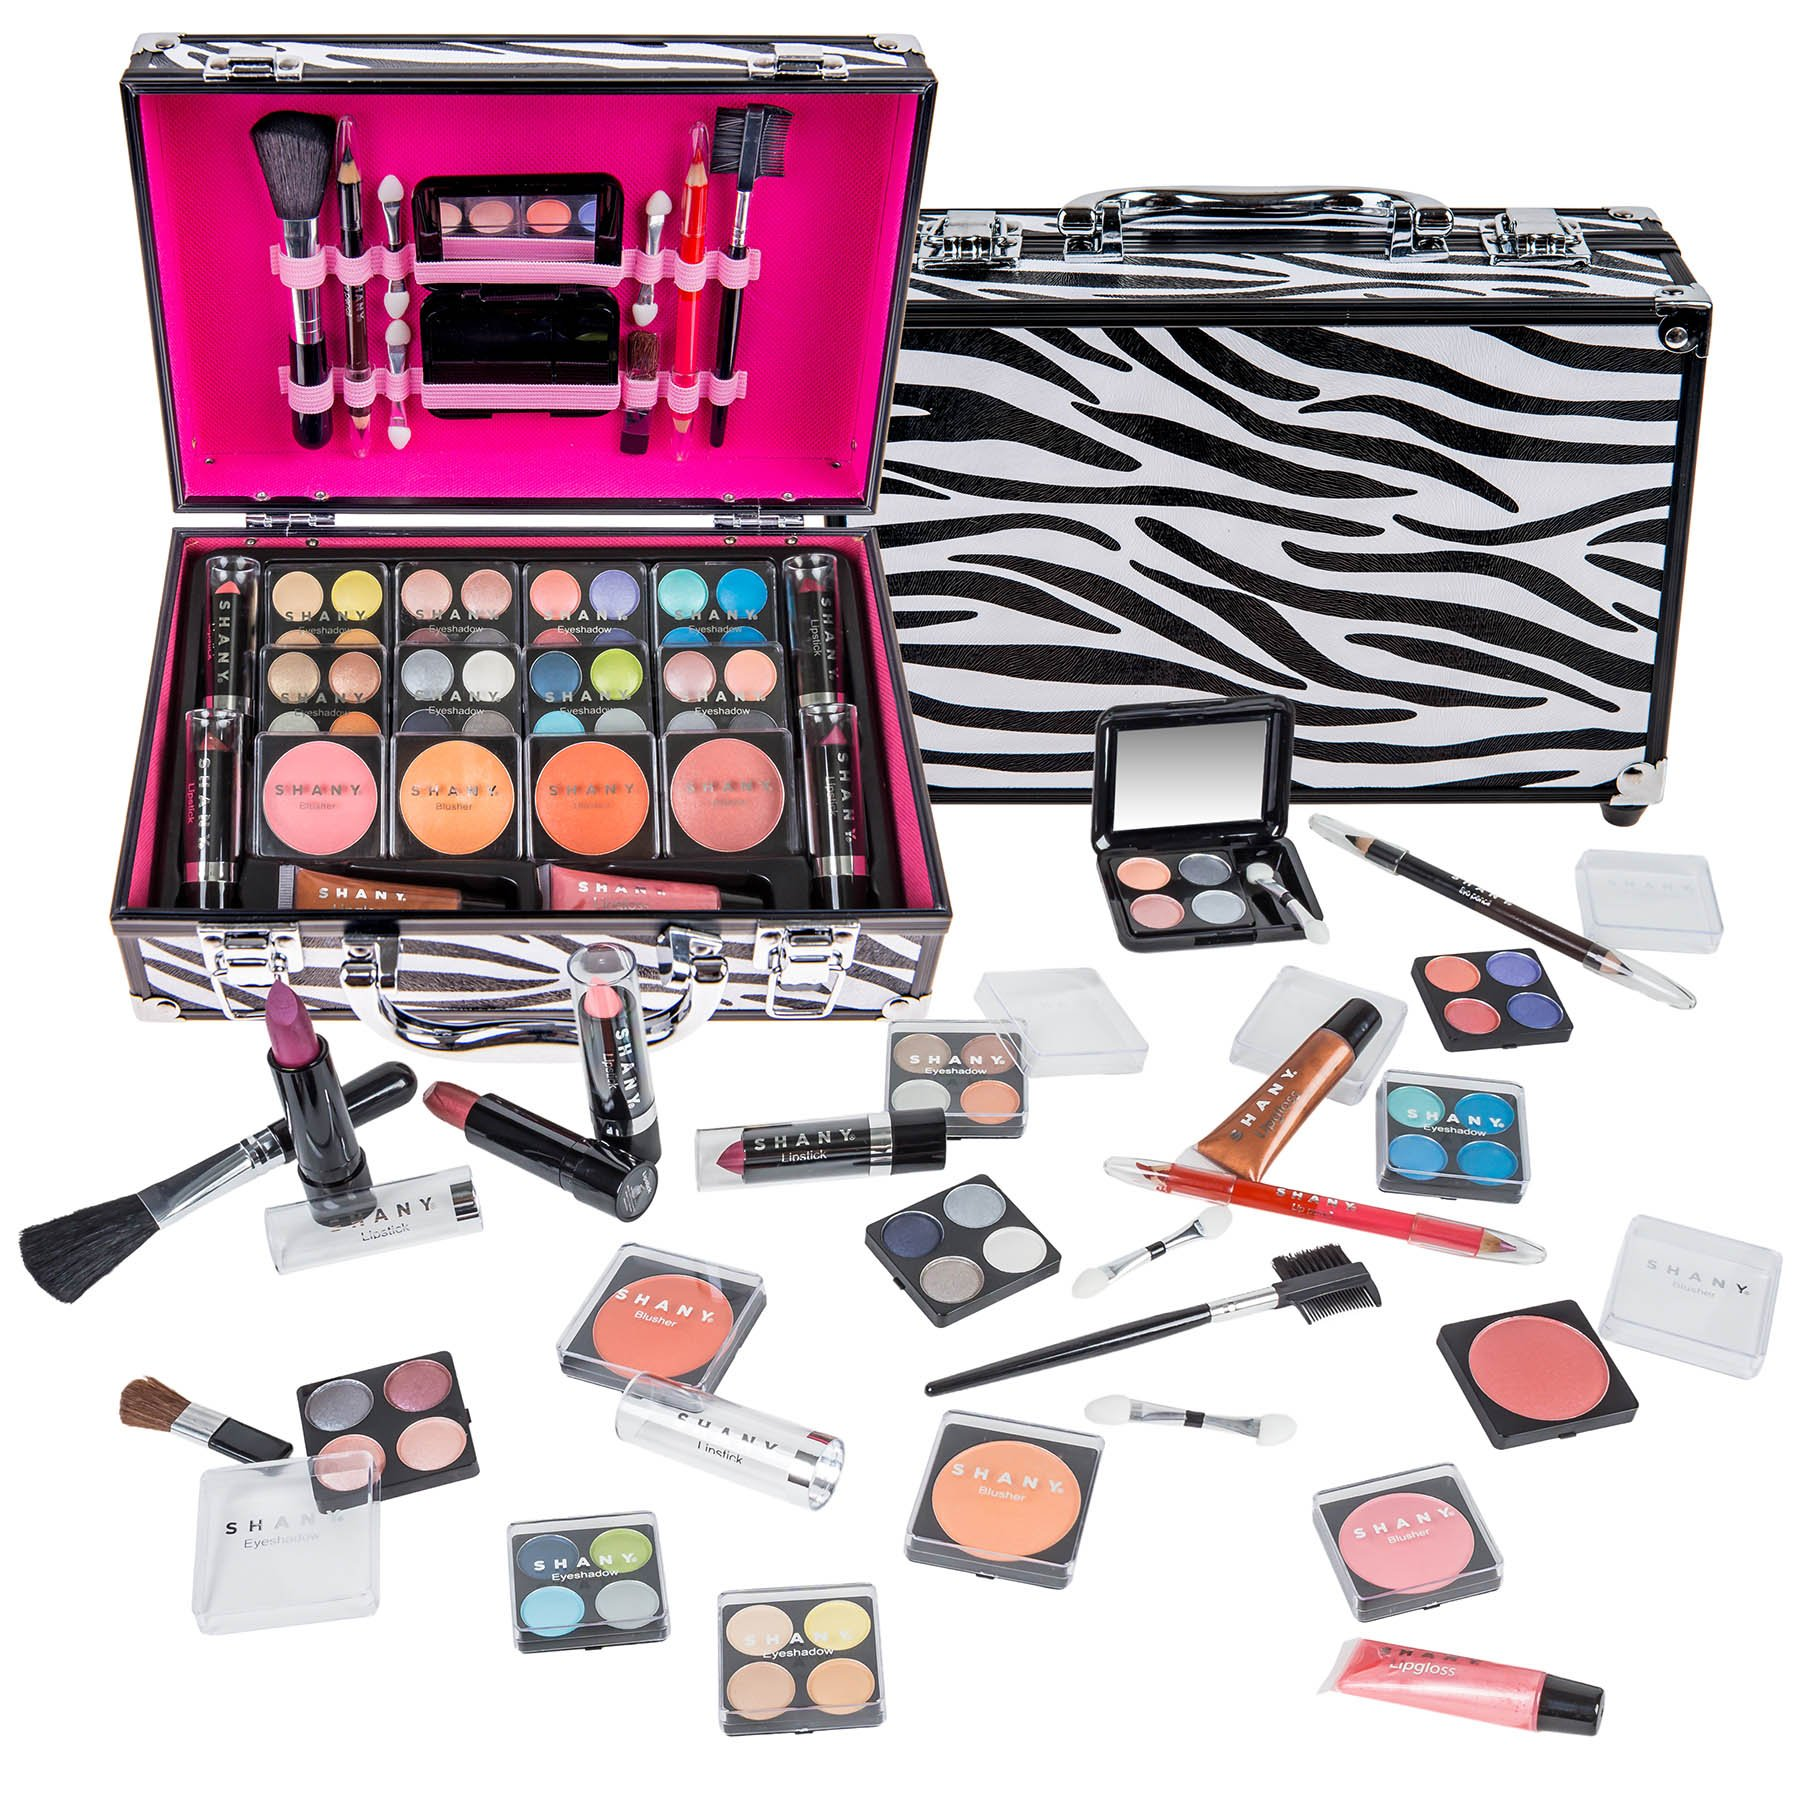 SHANY Carry All Makeup Train Case with Pro Makeup and Reusable Aluminum Case, Zebra